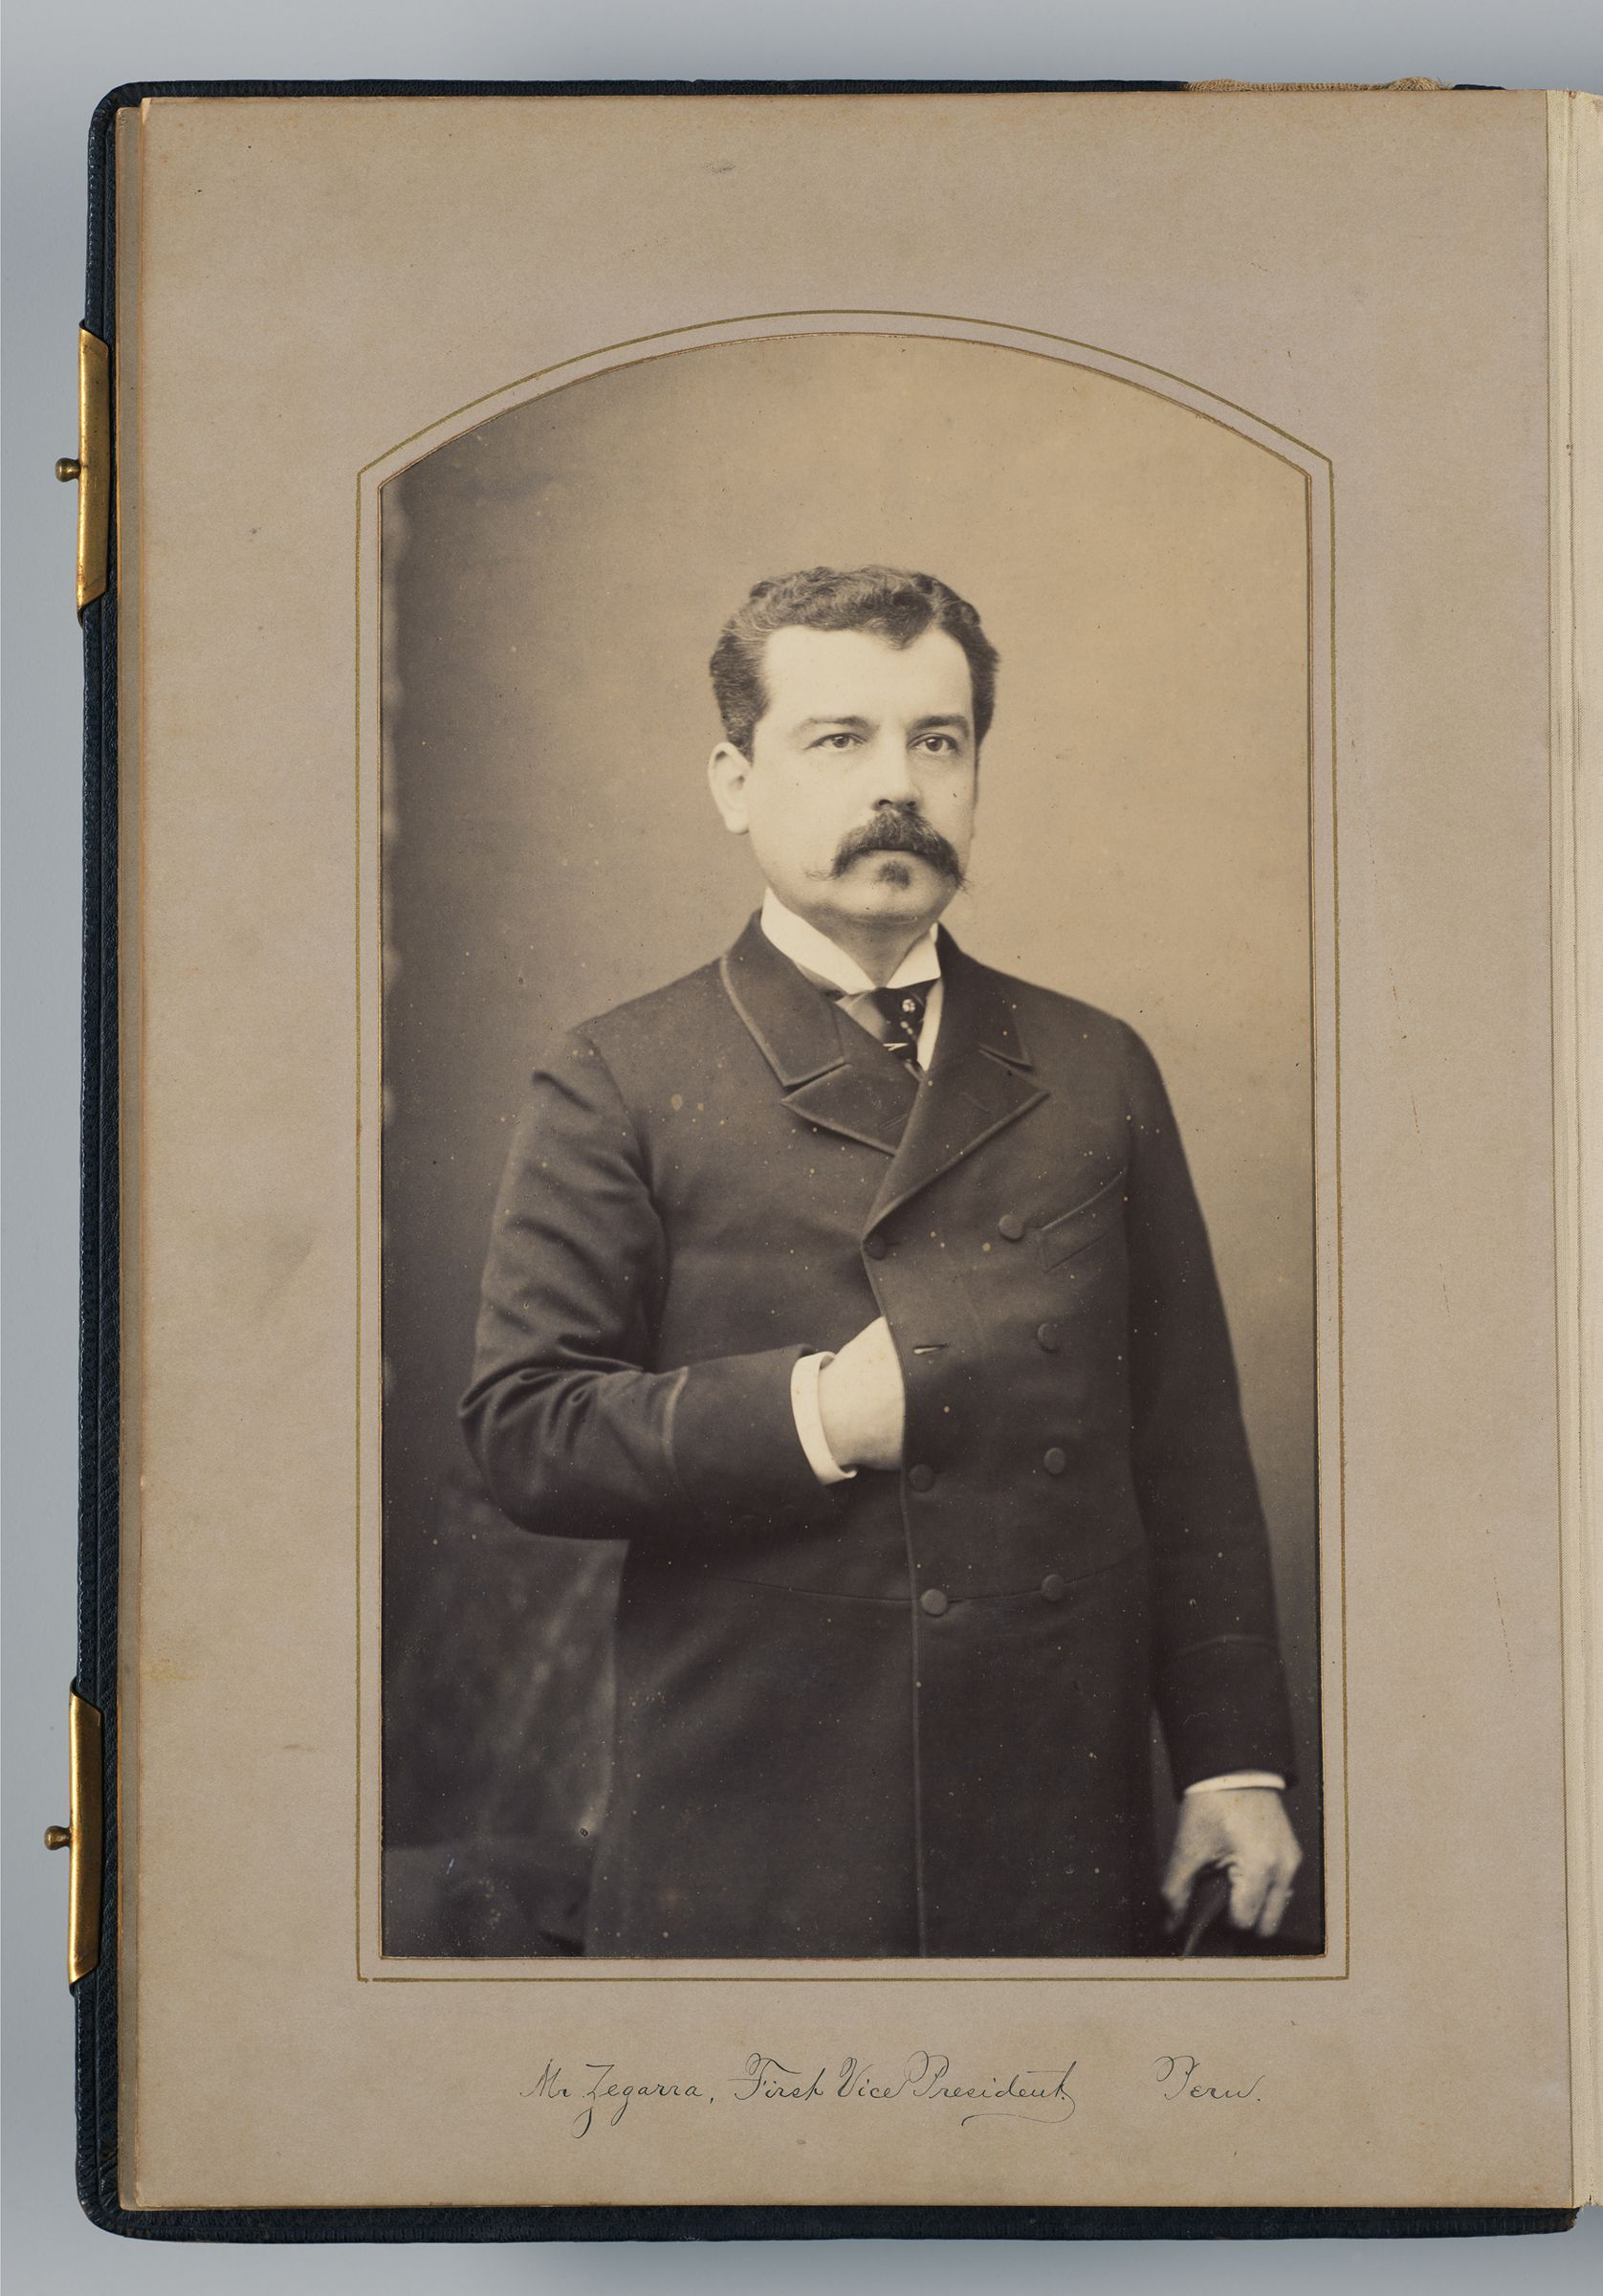 Felix Cipriano C. Zegarra (Envoy Extraordinary And Minister Plenipoteniary And First Vice President Of Peru)